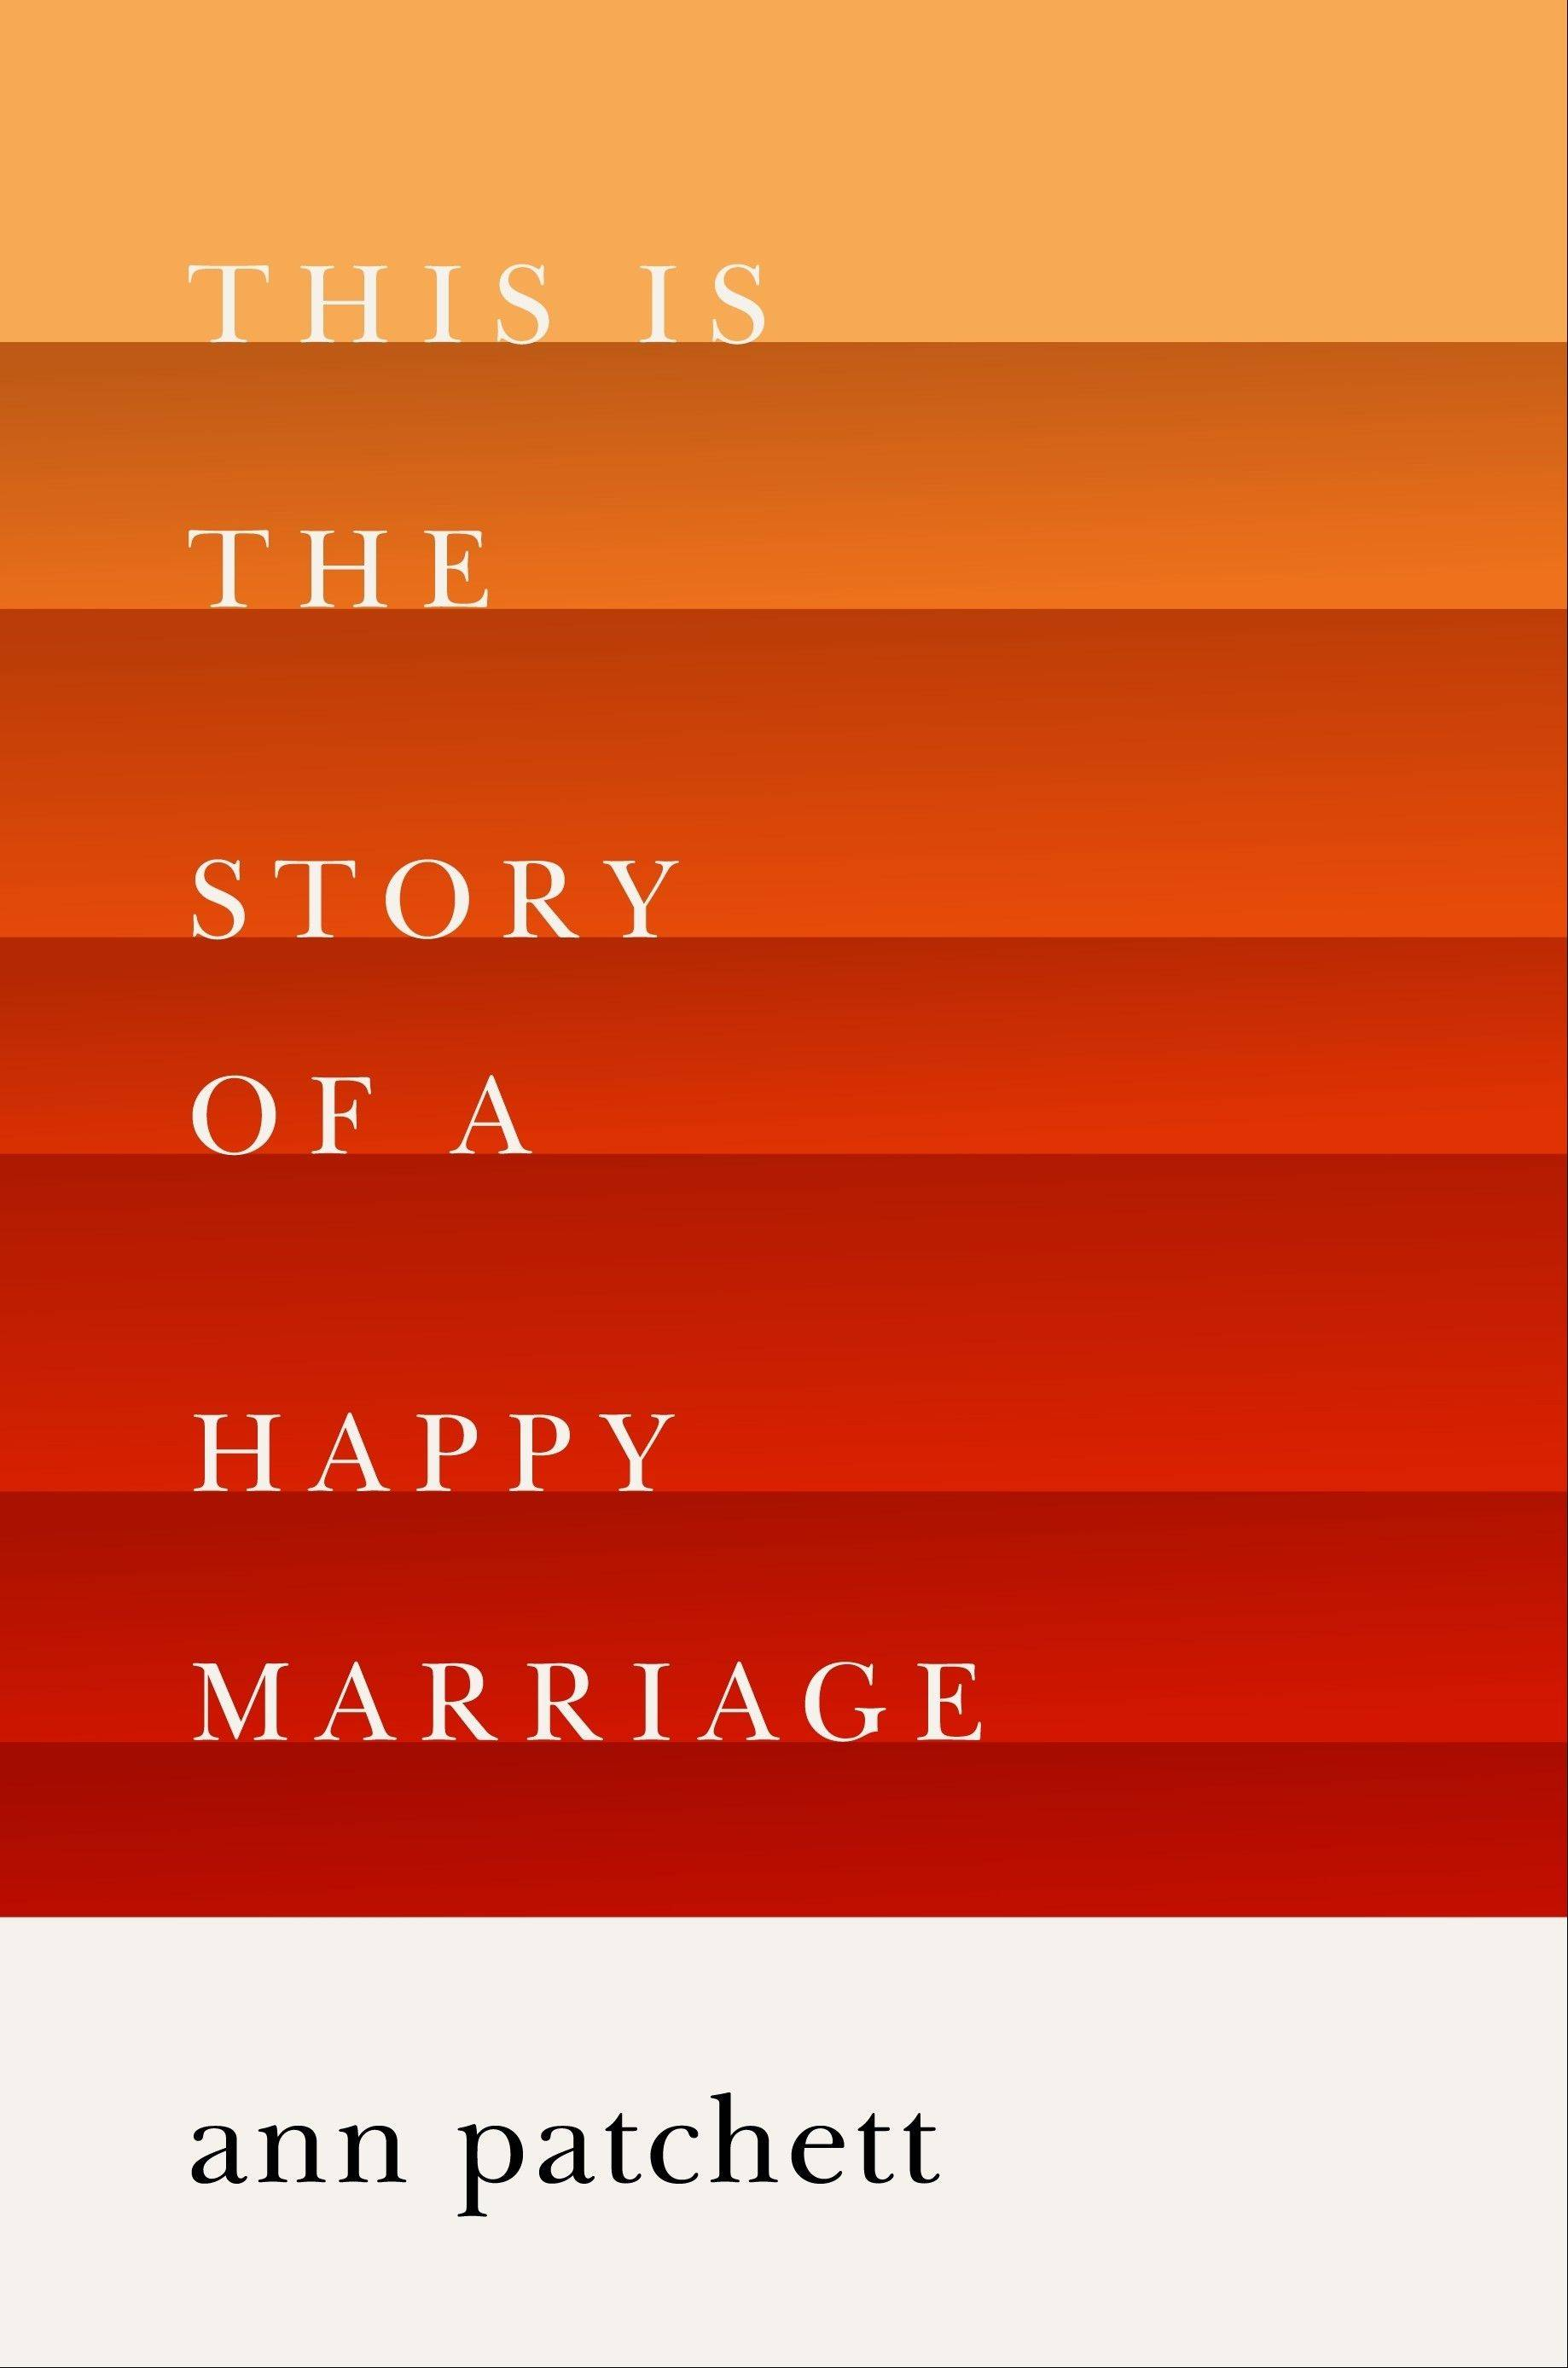 """This is the Story of a Happy Marriage"" is a new collection of essays by Ann Patchett."